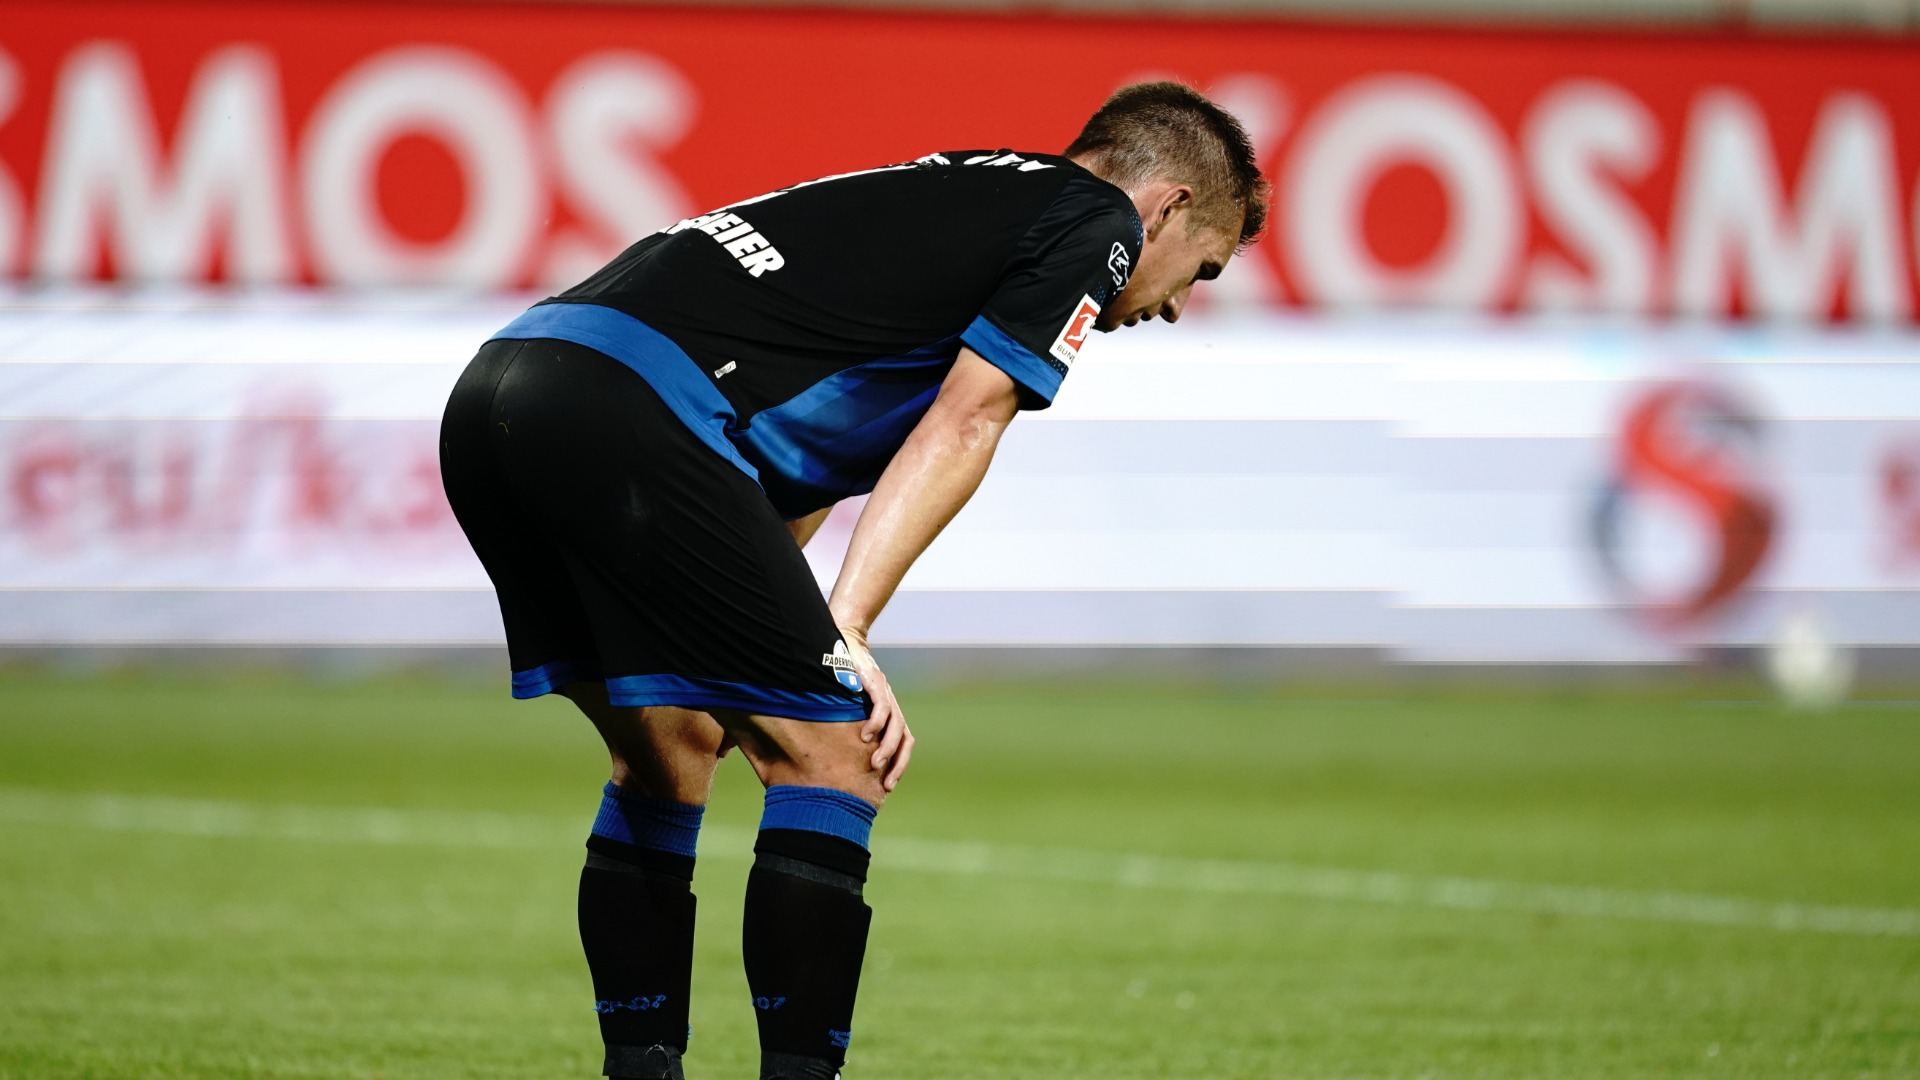 Paderborn relegated from Bundesliga after defeat to Union